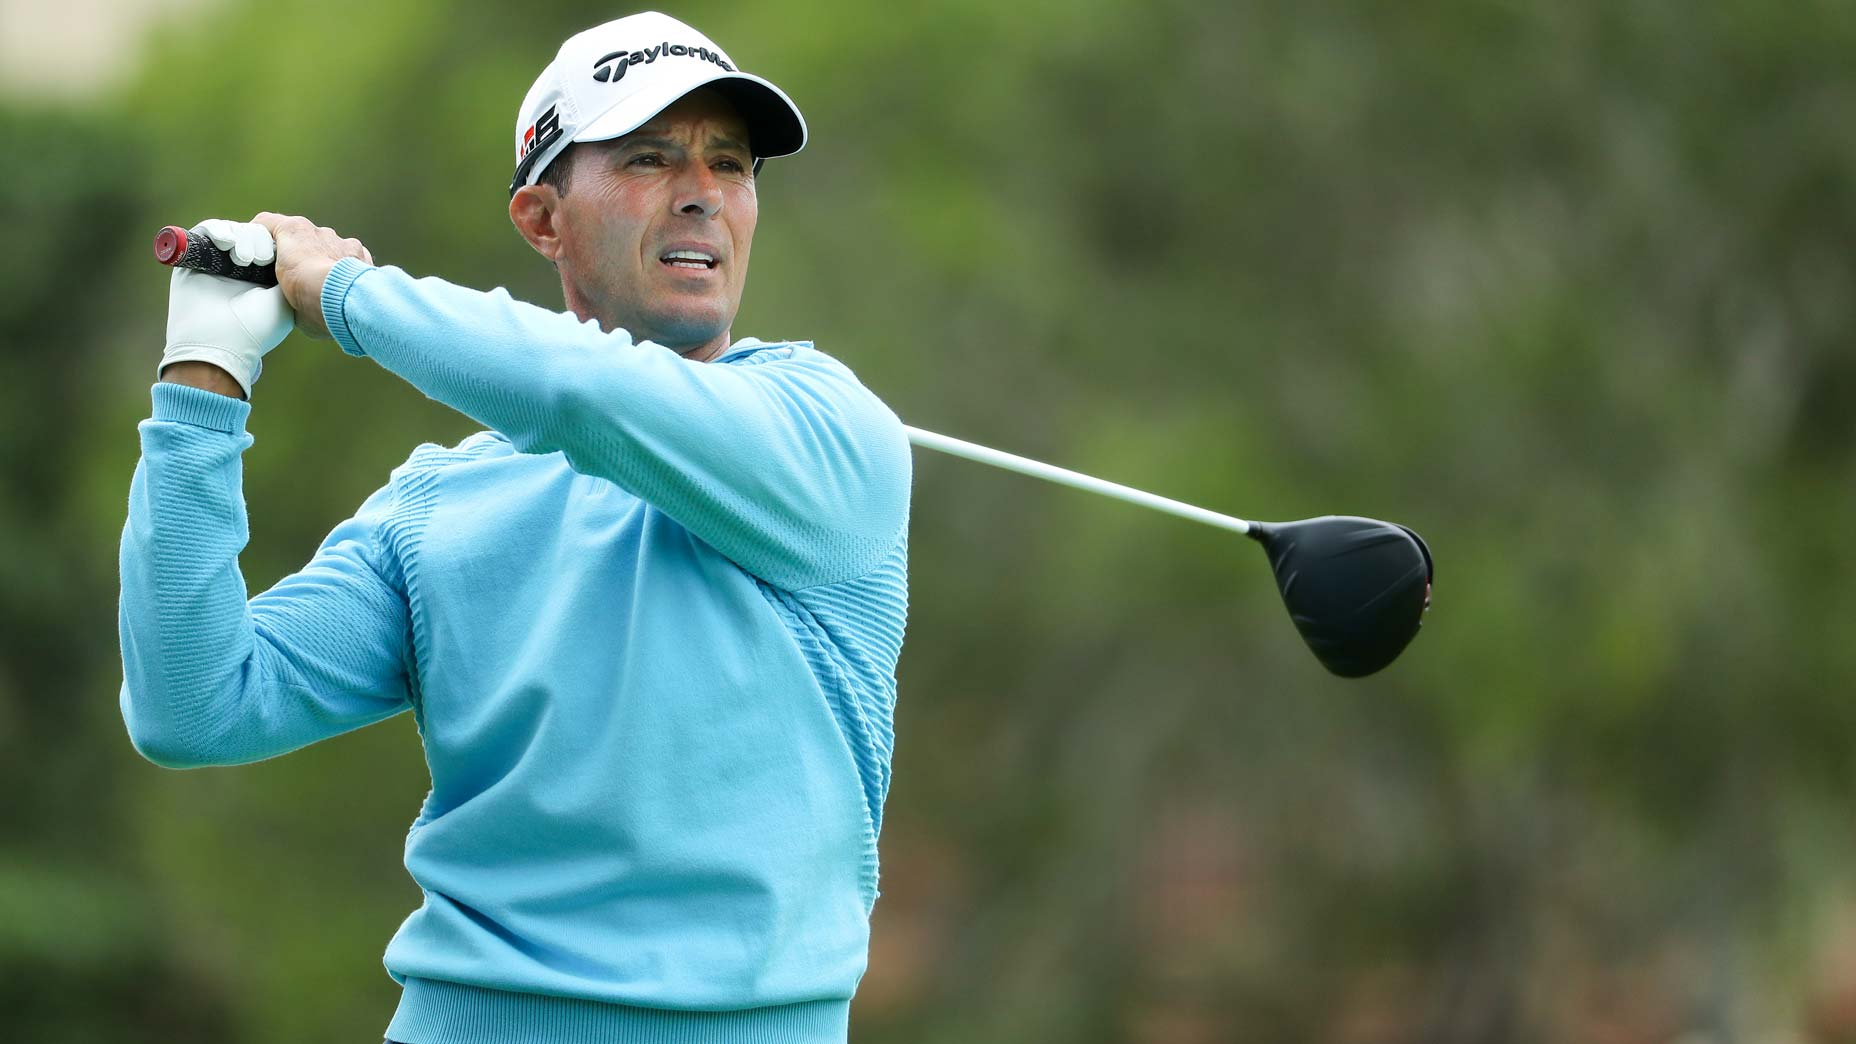 mike weir swing